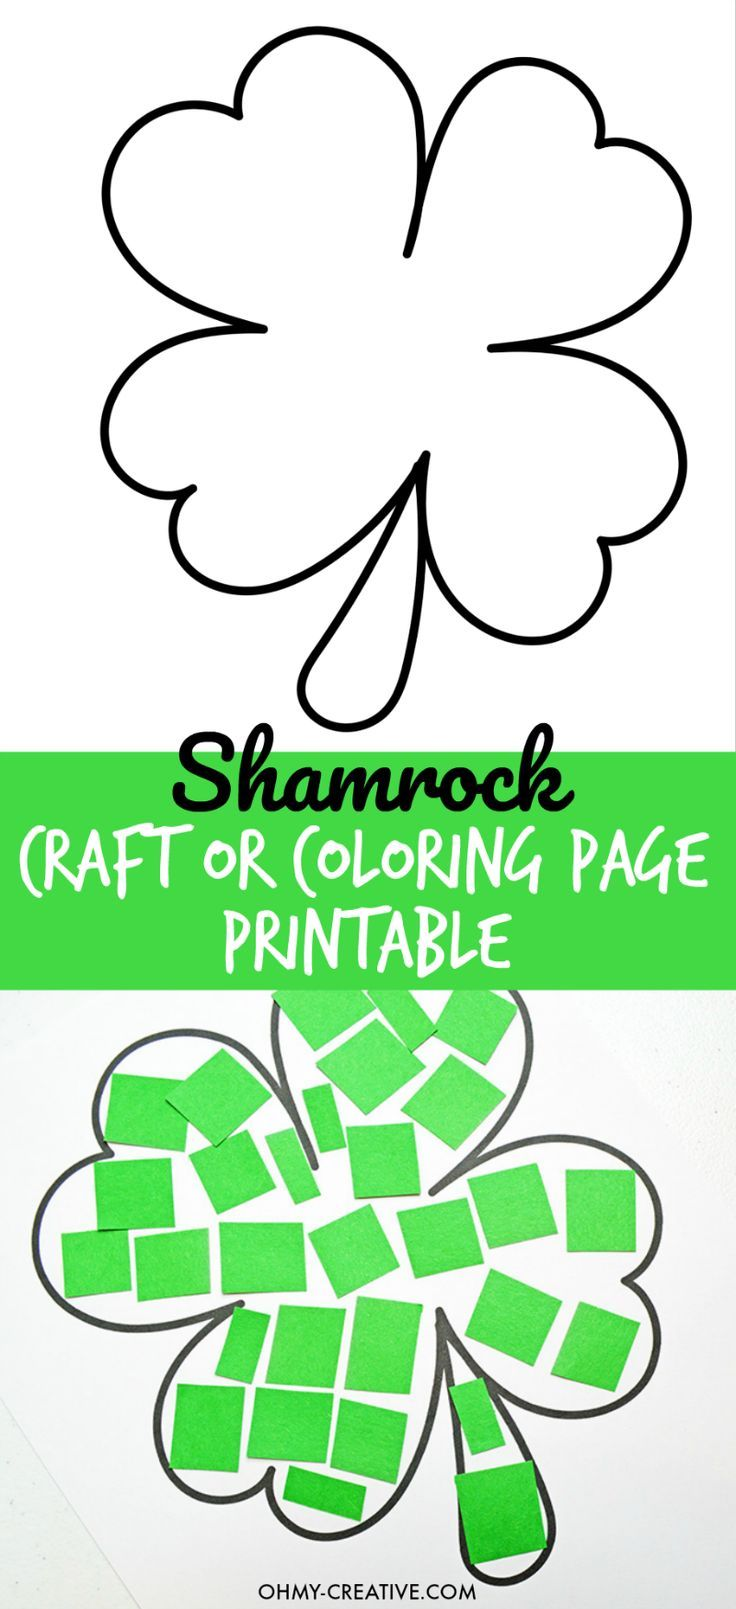 Use my referral code fvxknmj to earn a free $10 when signing up for Ibotta!      Visit my personal finance blog www.faithingoodtaste.com to learn how to make extra money!     Shamrock Template Free Printable | St Patrick's Day activities | St Patrick's Day Crafts | St Patrick's Day Crafts for Preschoolers | St. Patrick Day Crafts for kids | St. Patricks day Crafts for Toddlers | Shamrock Coloring Page | Cut and Paste Craft | St Patrick's Day coloring Pages